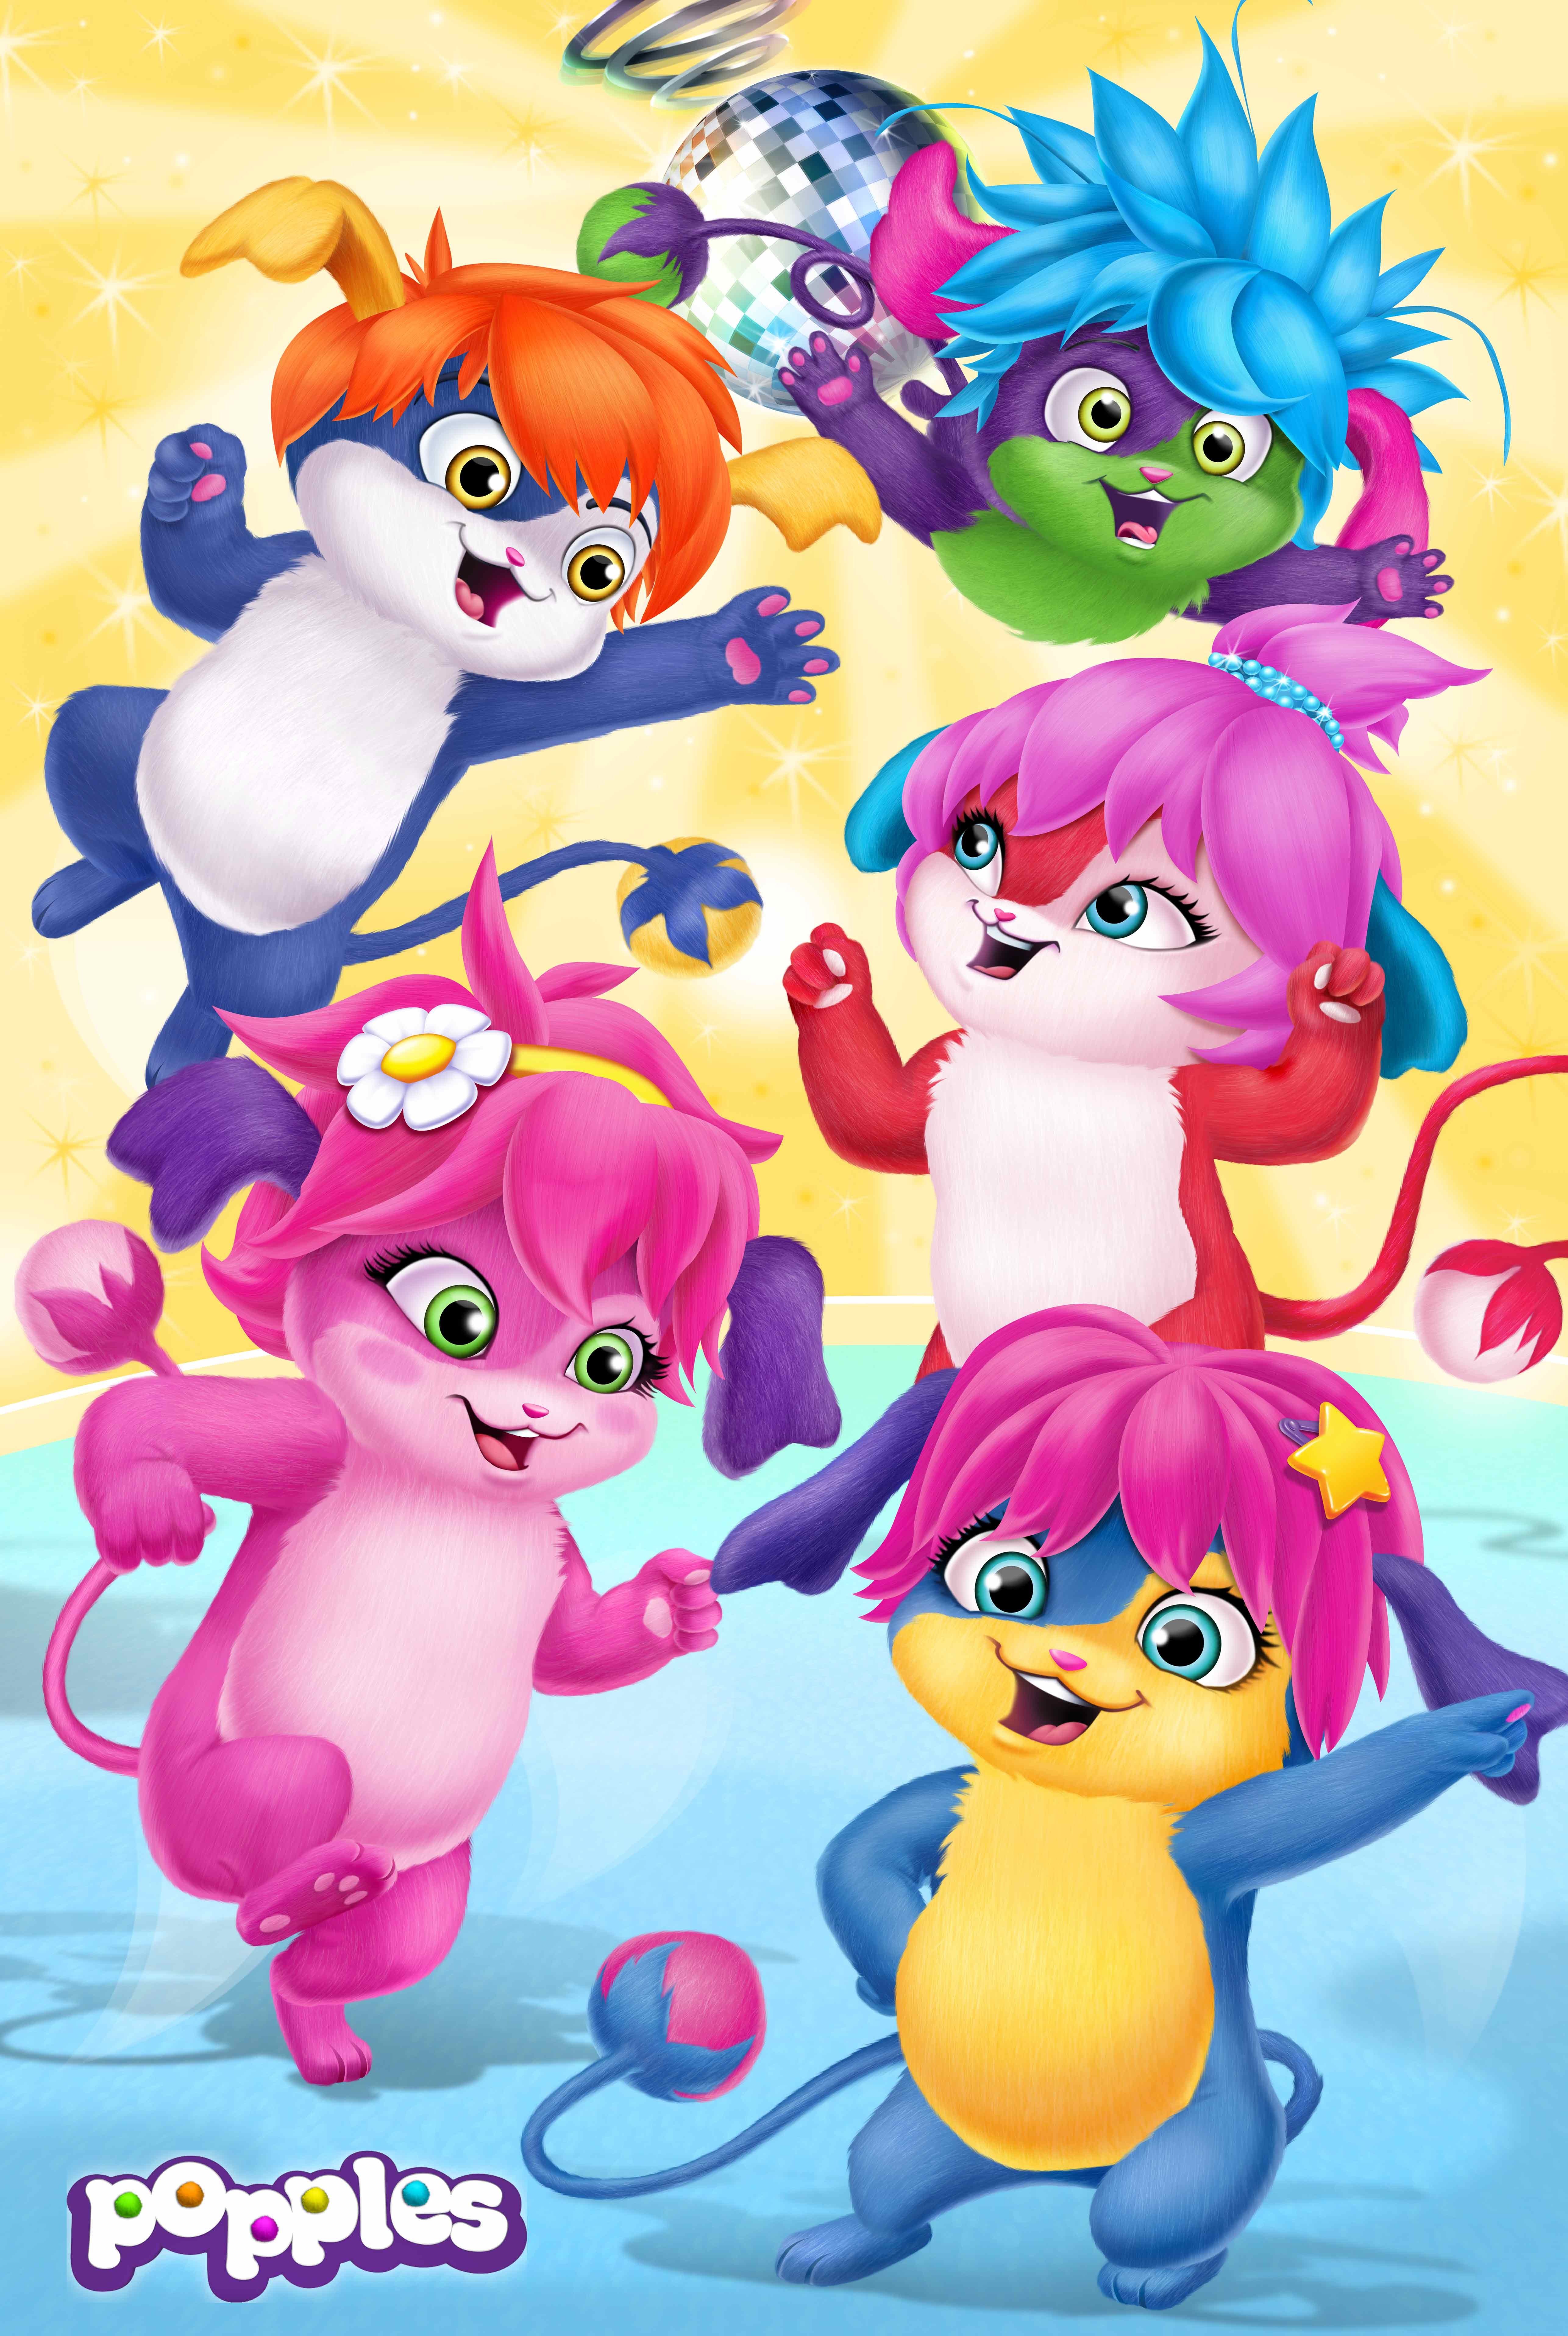 Popples, ON kids and family, Method Animation, ON Entertainment, ON Animation Studios